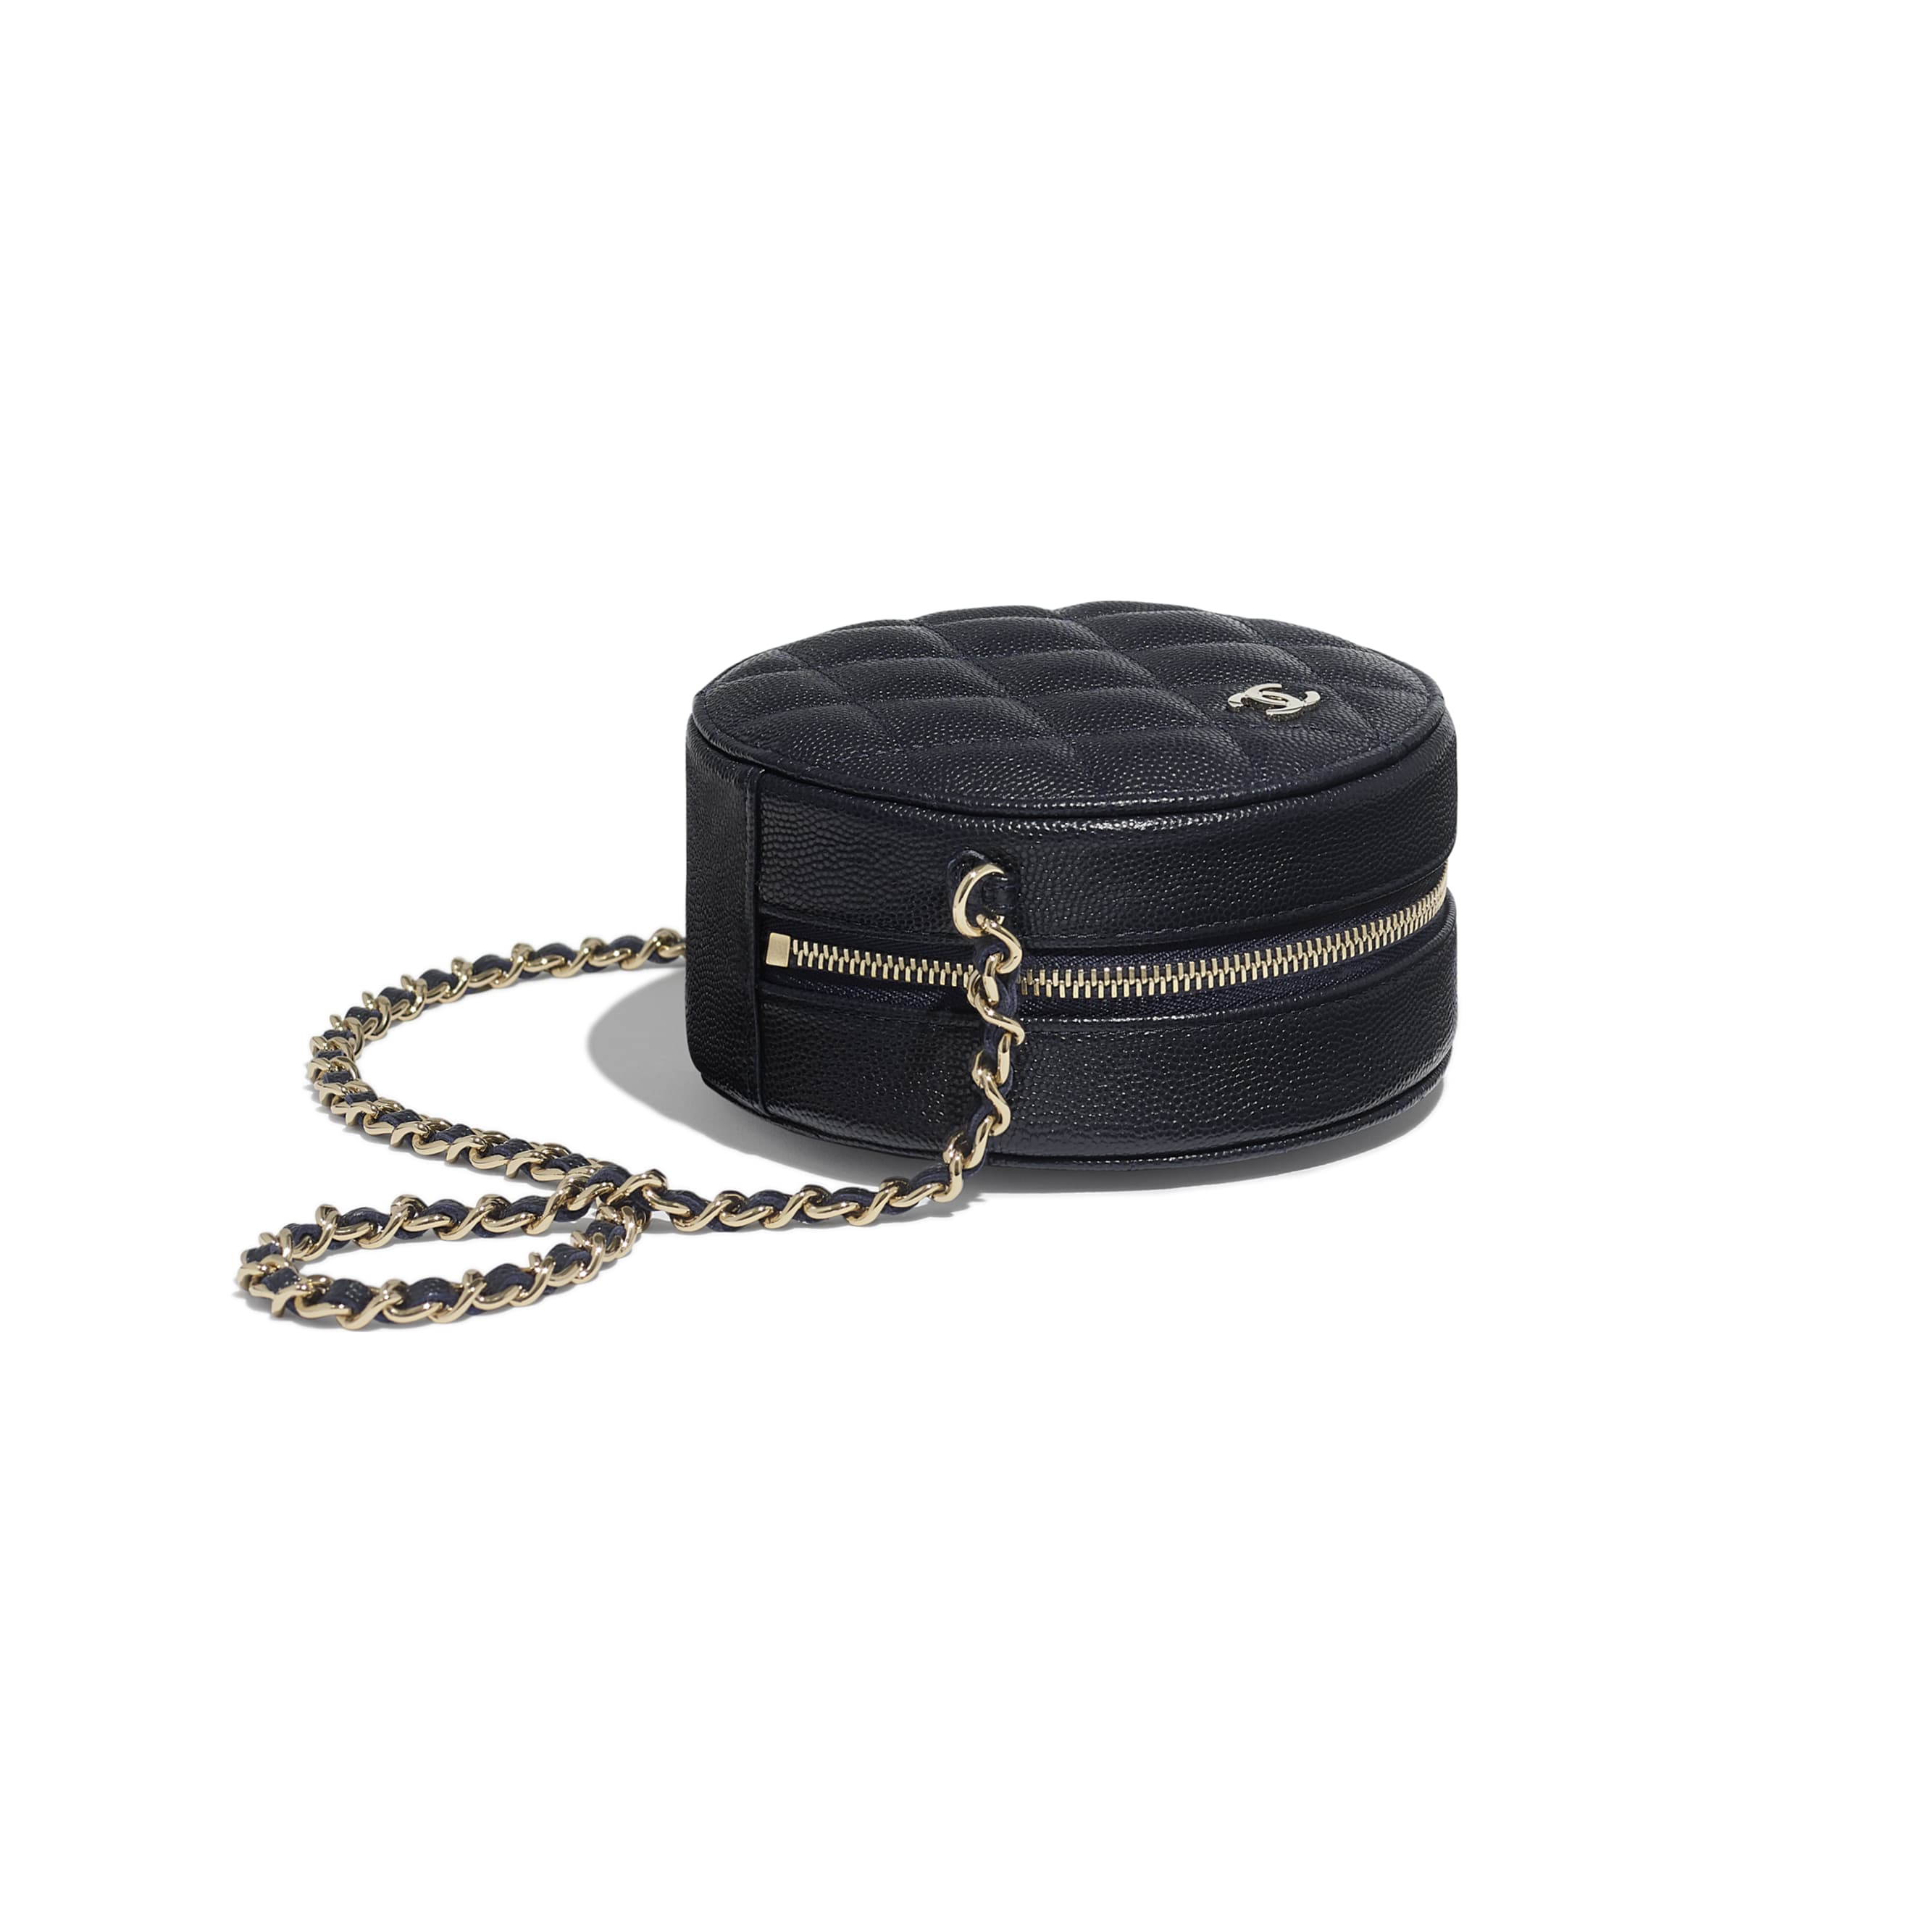 Classic Clutch With Chain - Navy Blue - Grained Calfskin & Gold-Tone Metal - Extra view - see standard sized version